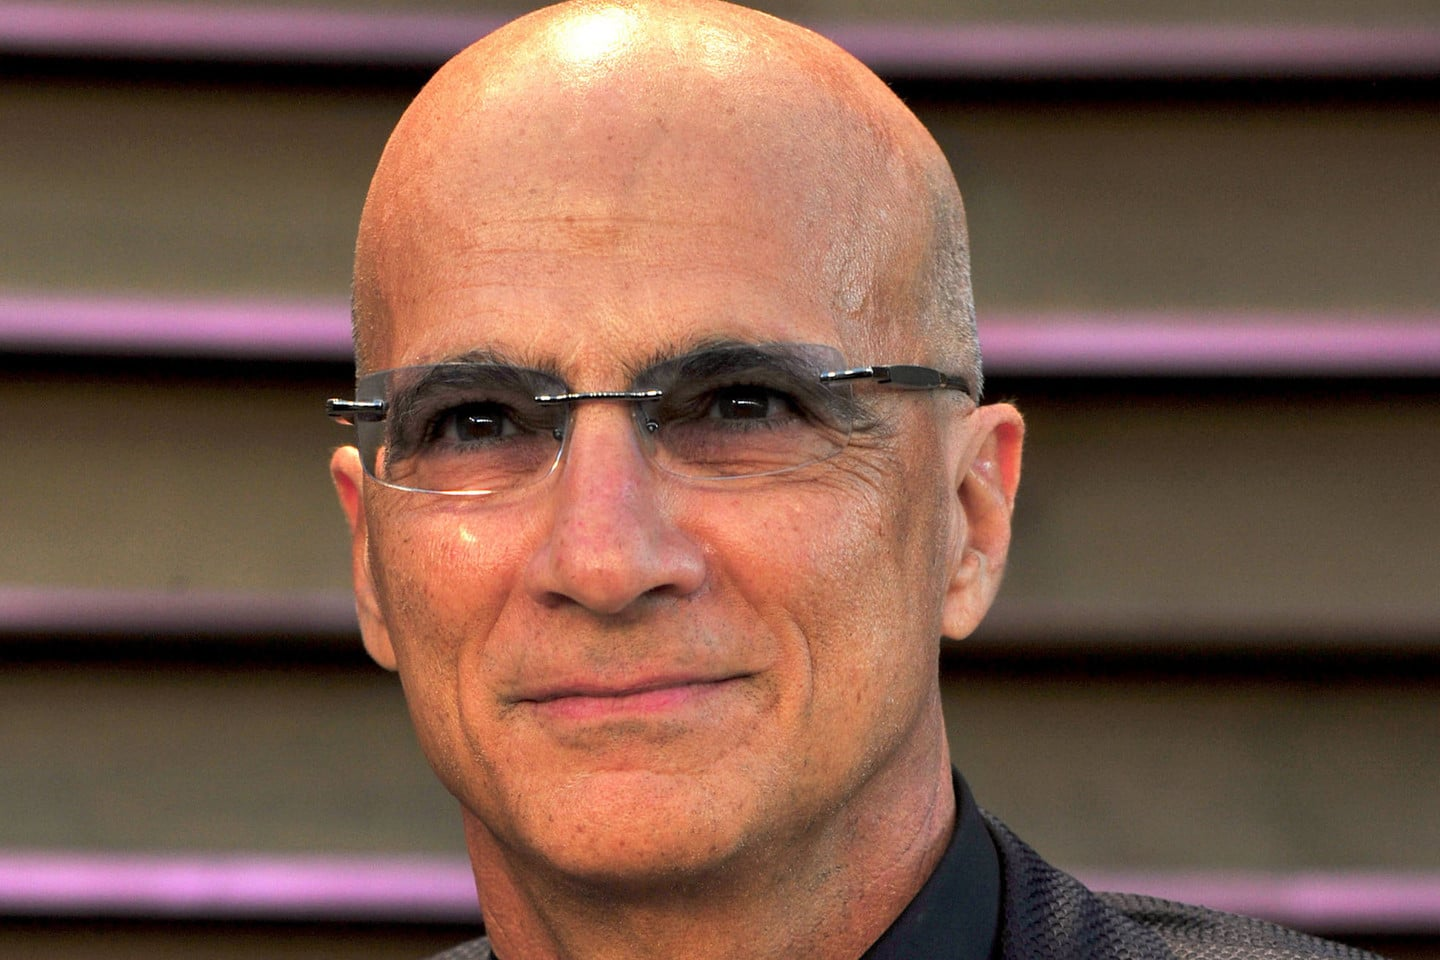 Jimmy Iovine is planning to leave Apple in August, sources say